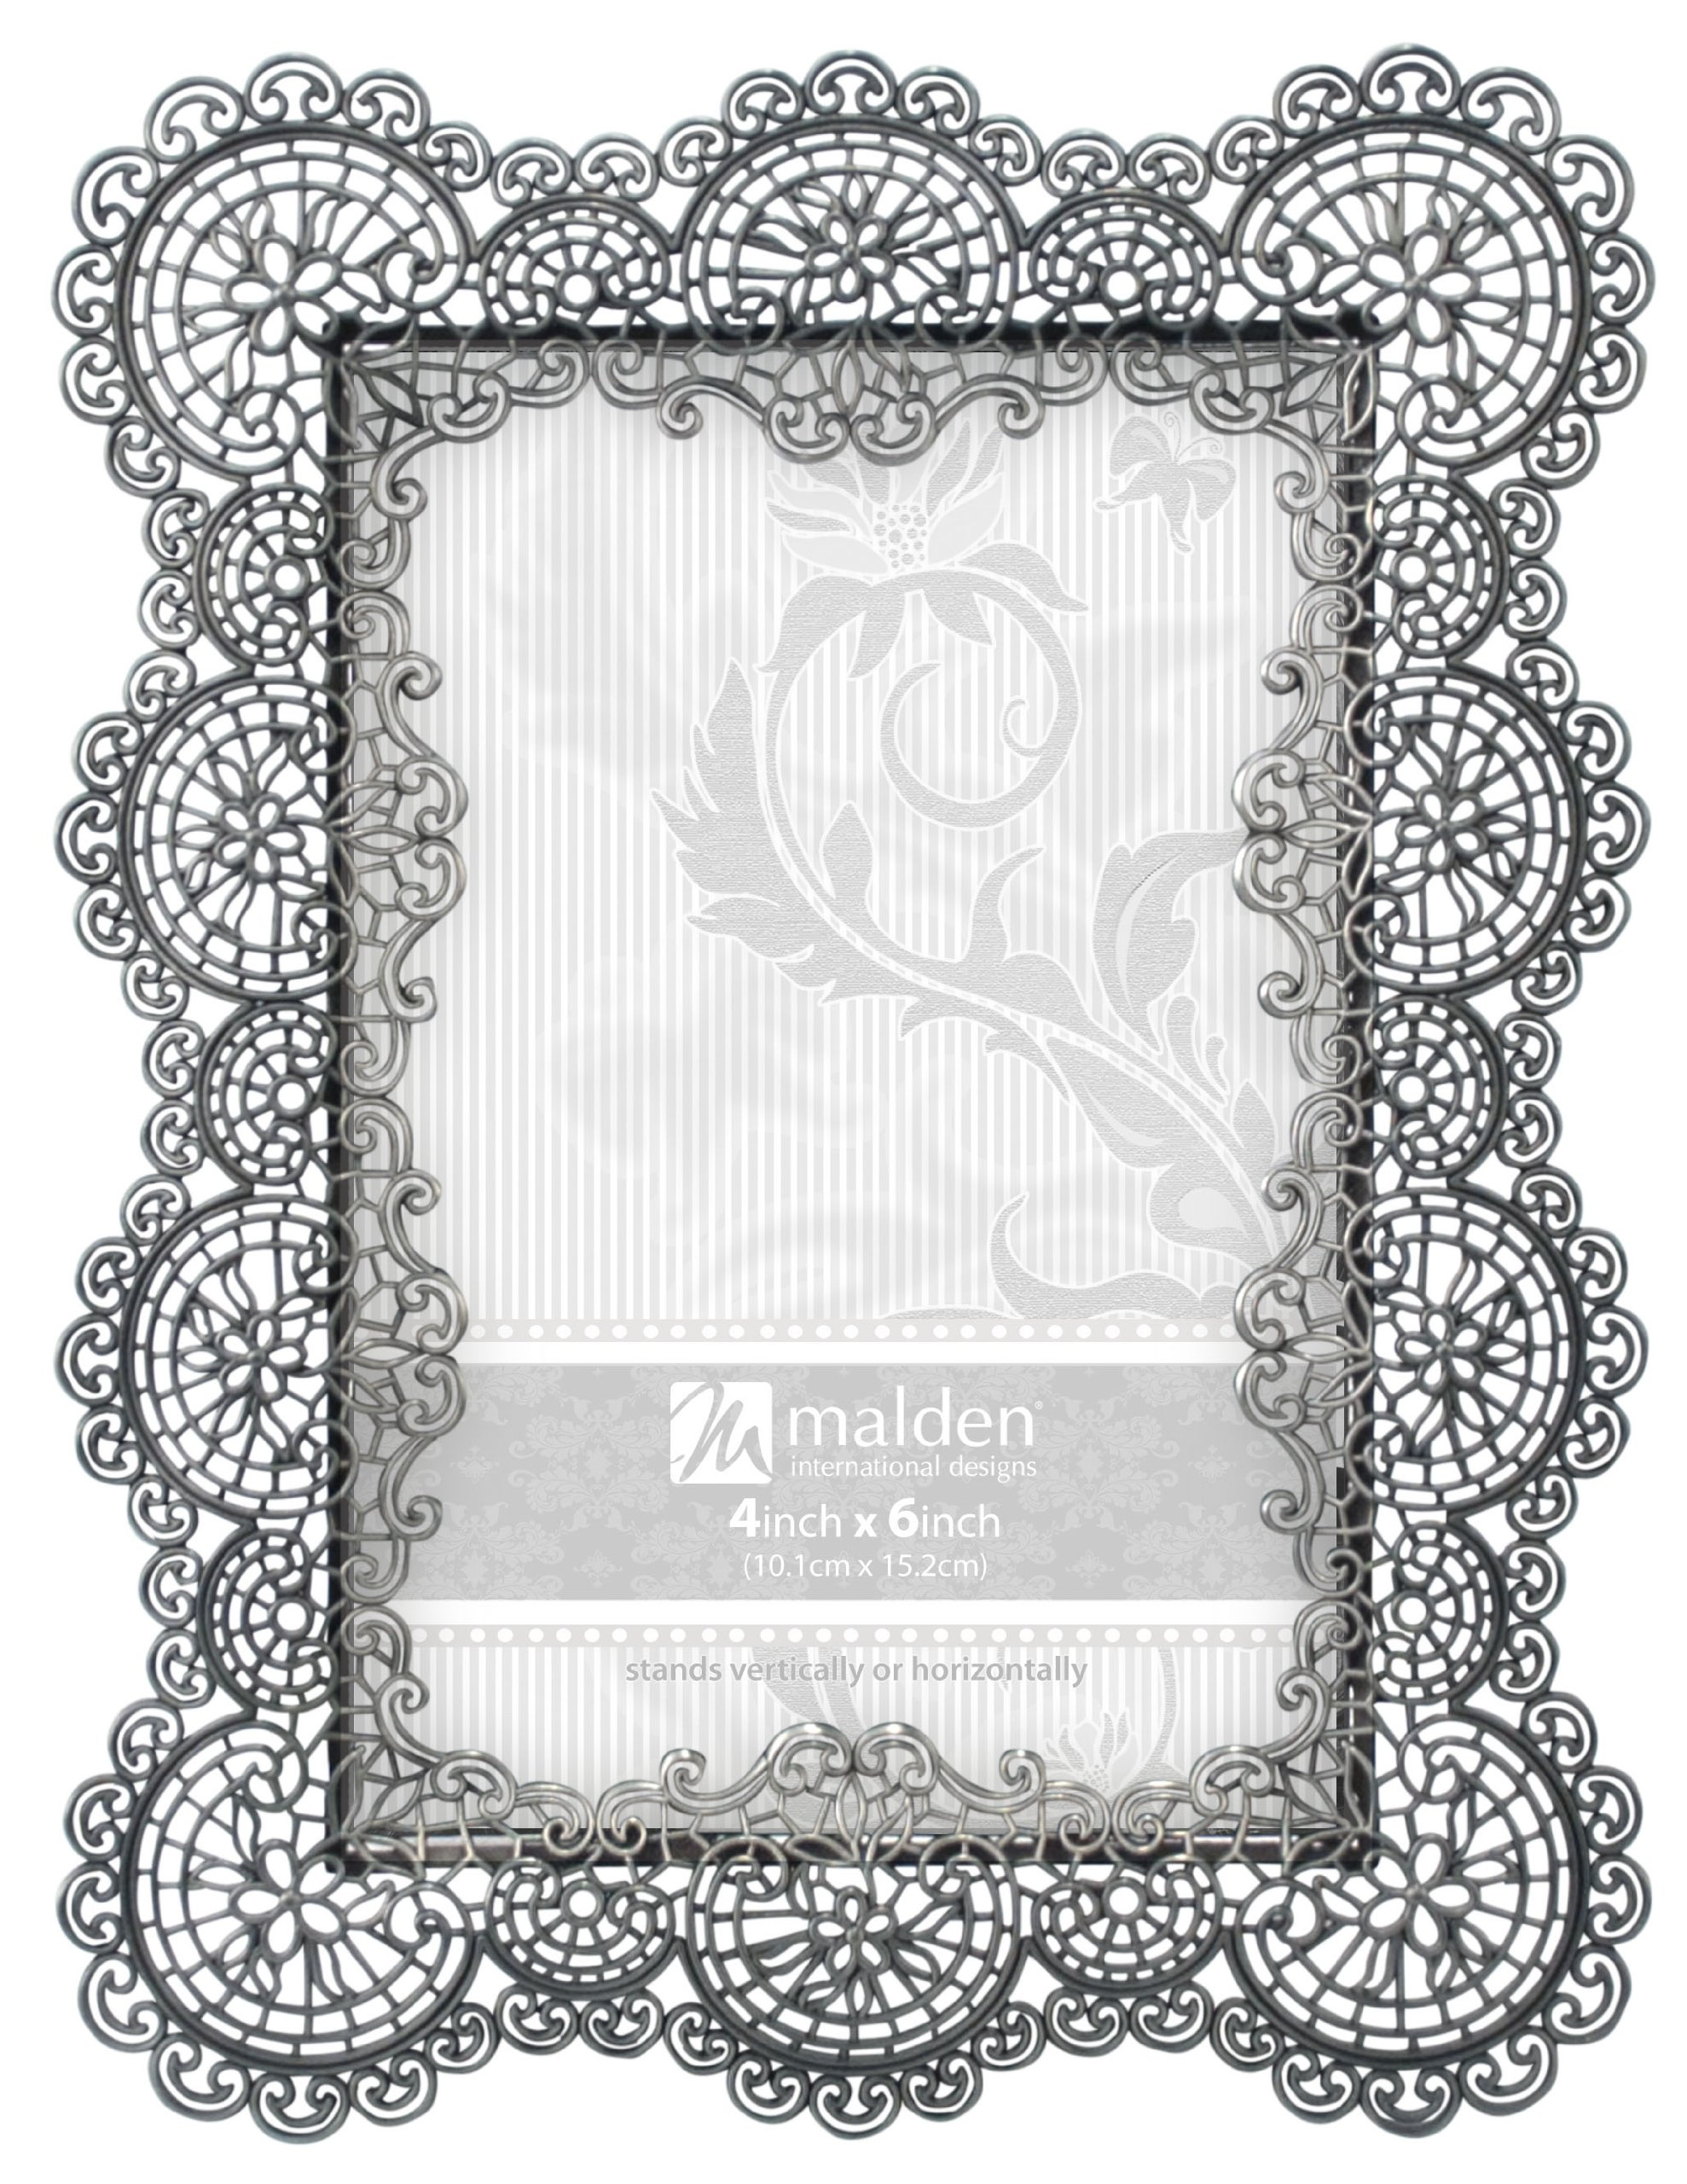 Malden International Designs Sabella Lace Metal Picture Frame, 4x6, Silver by Malden International Designs